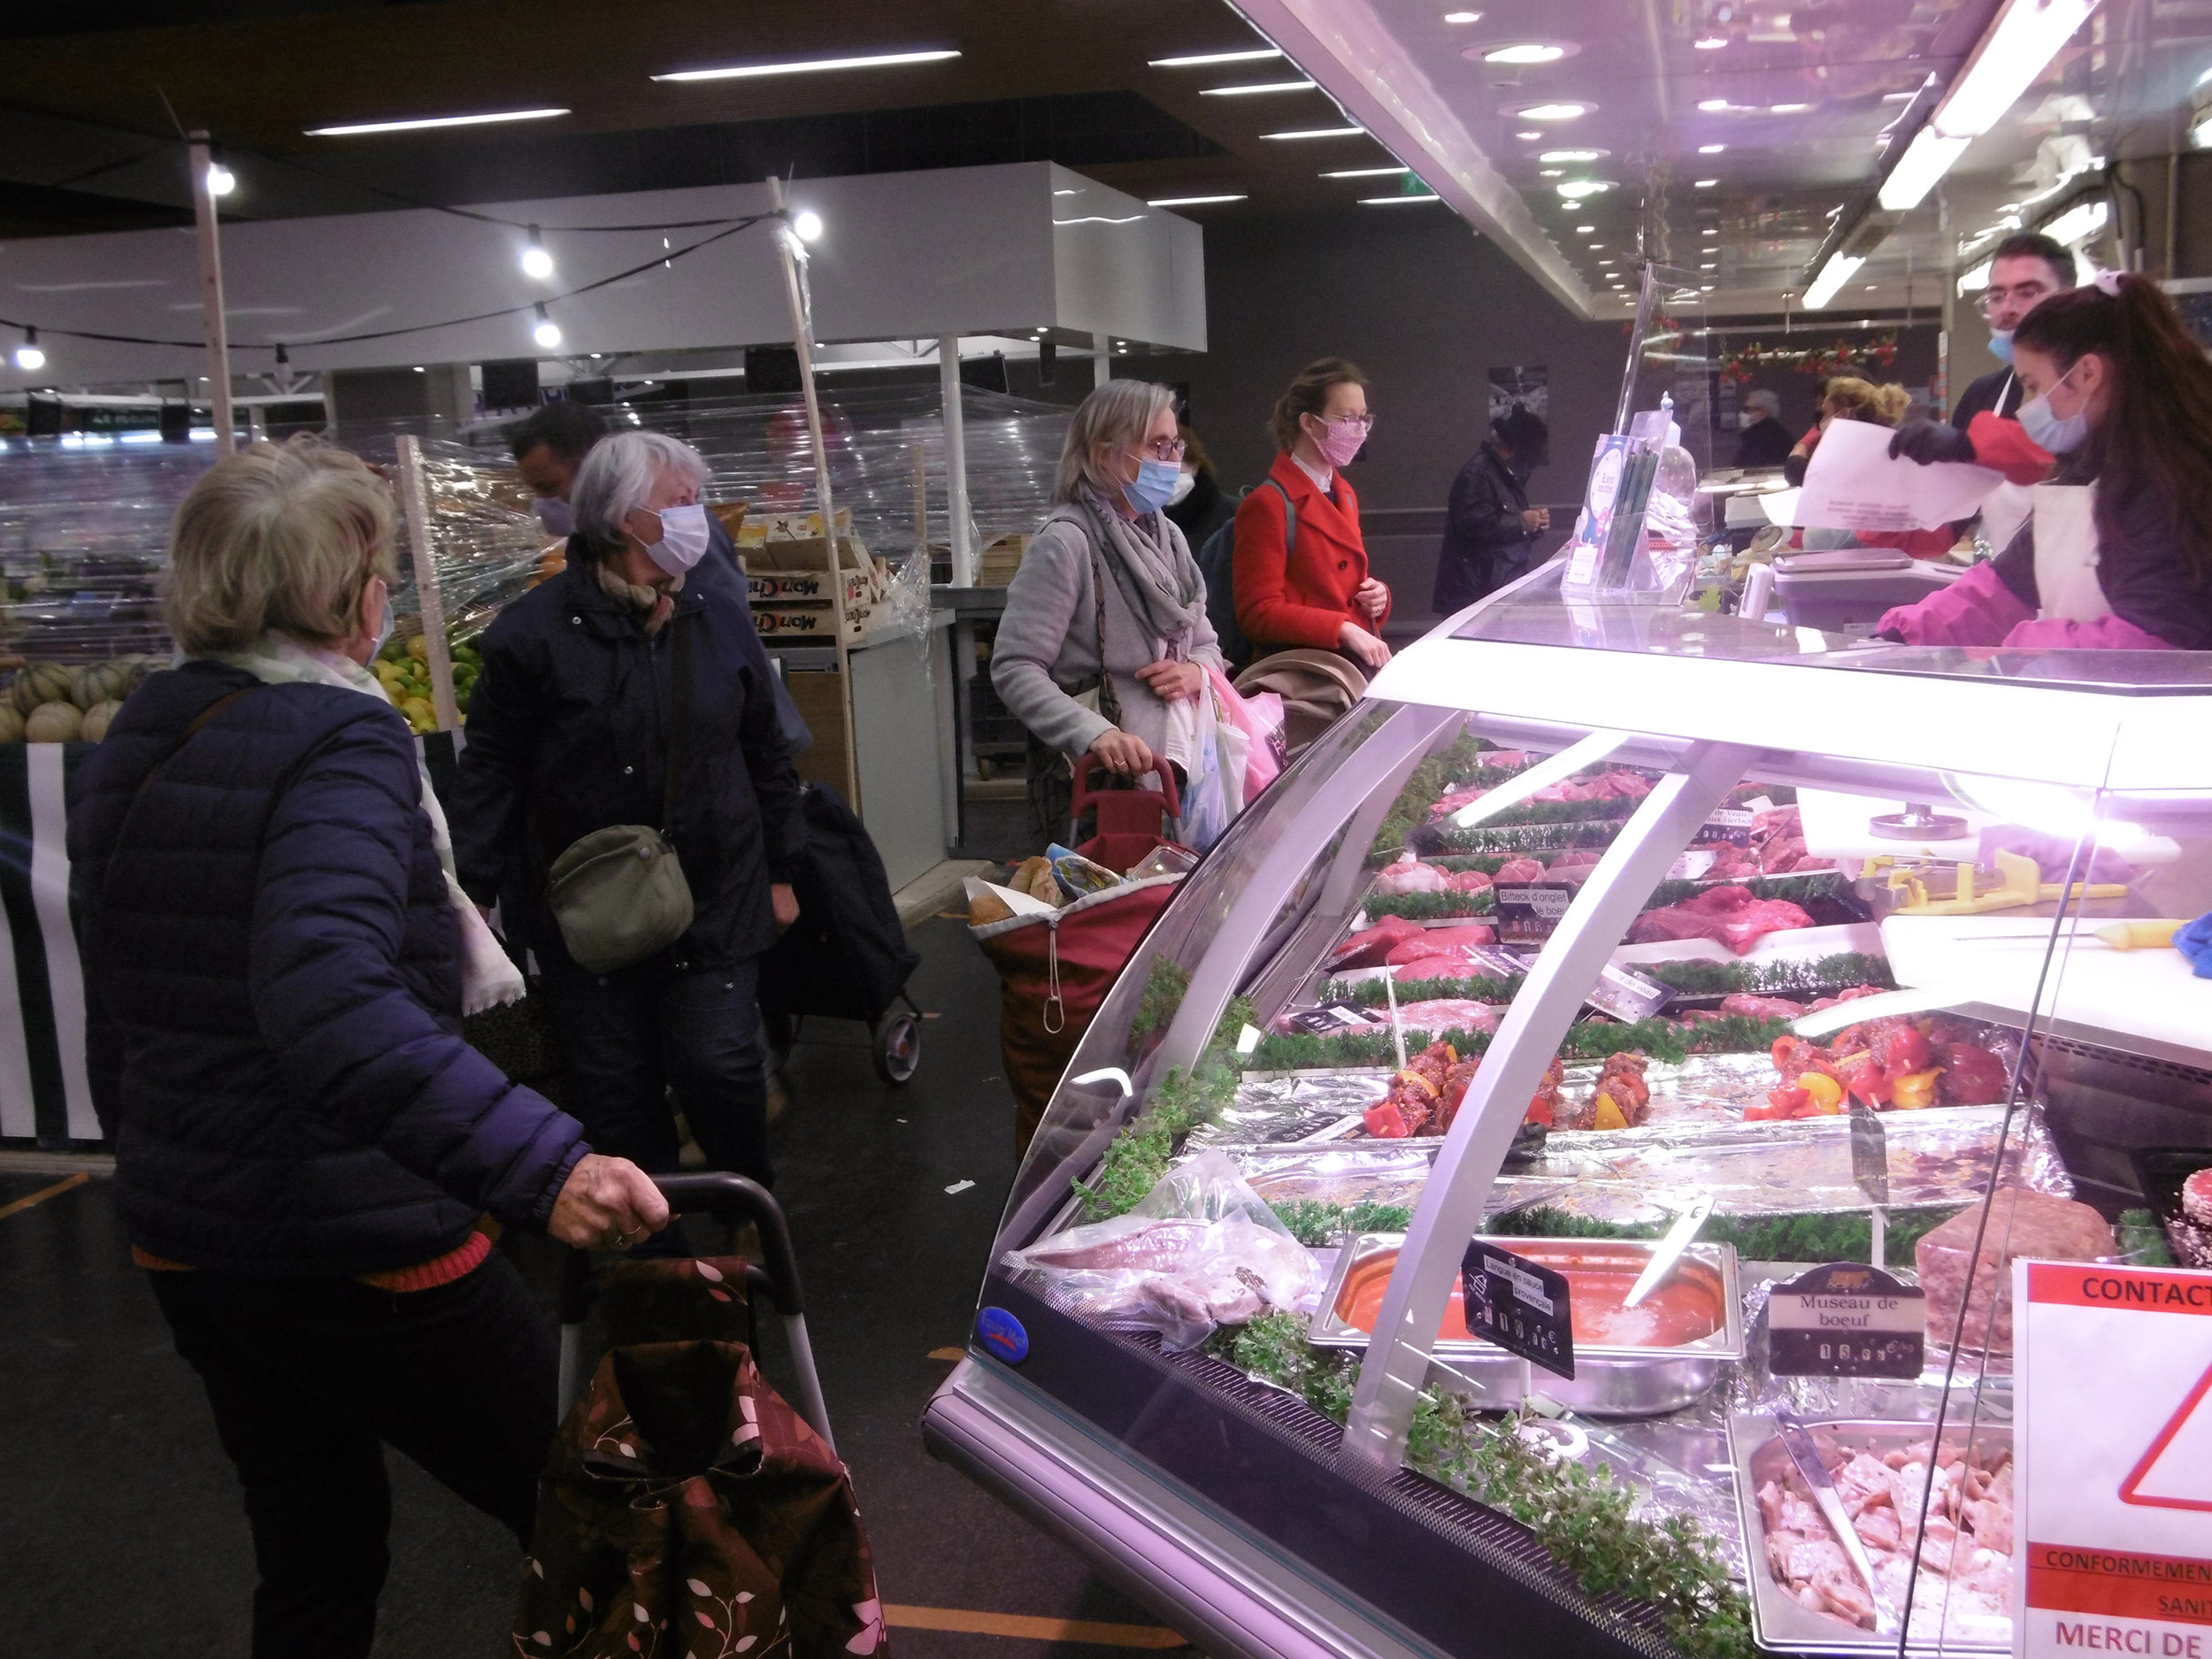 Shoppers stand in line to buy meat from a market in Malakoff, France, on June 17.